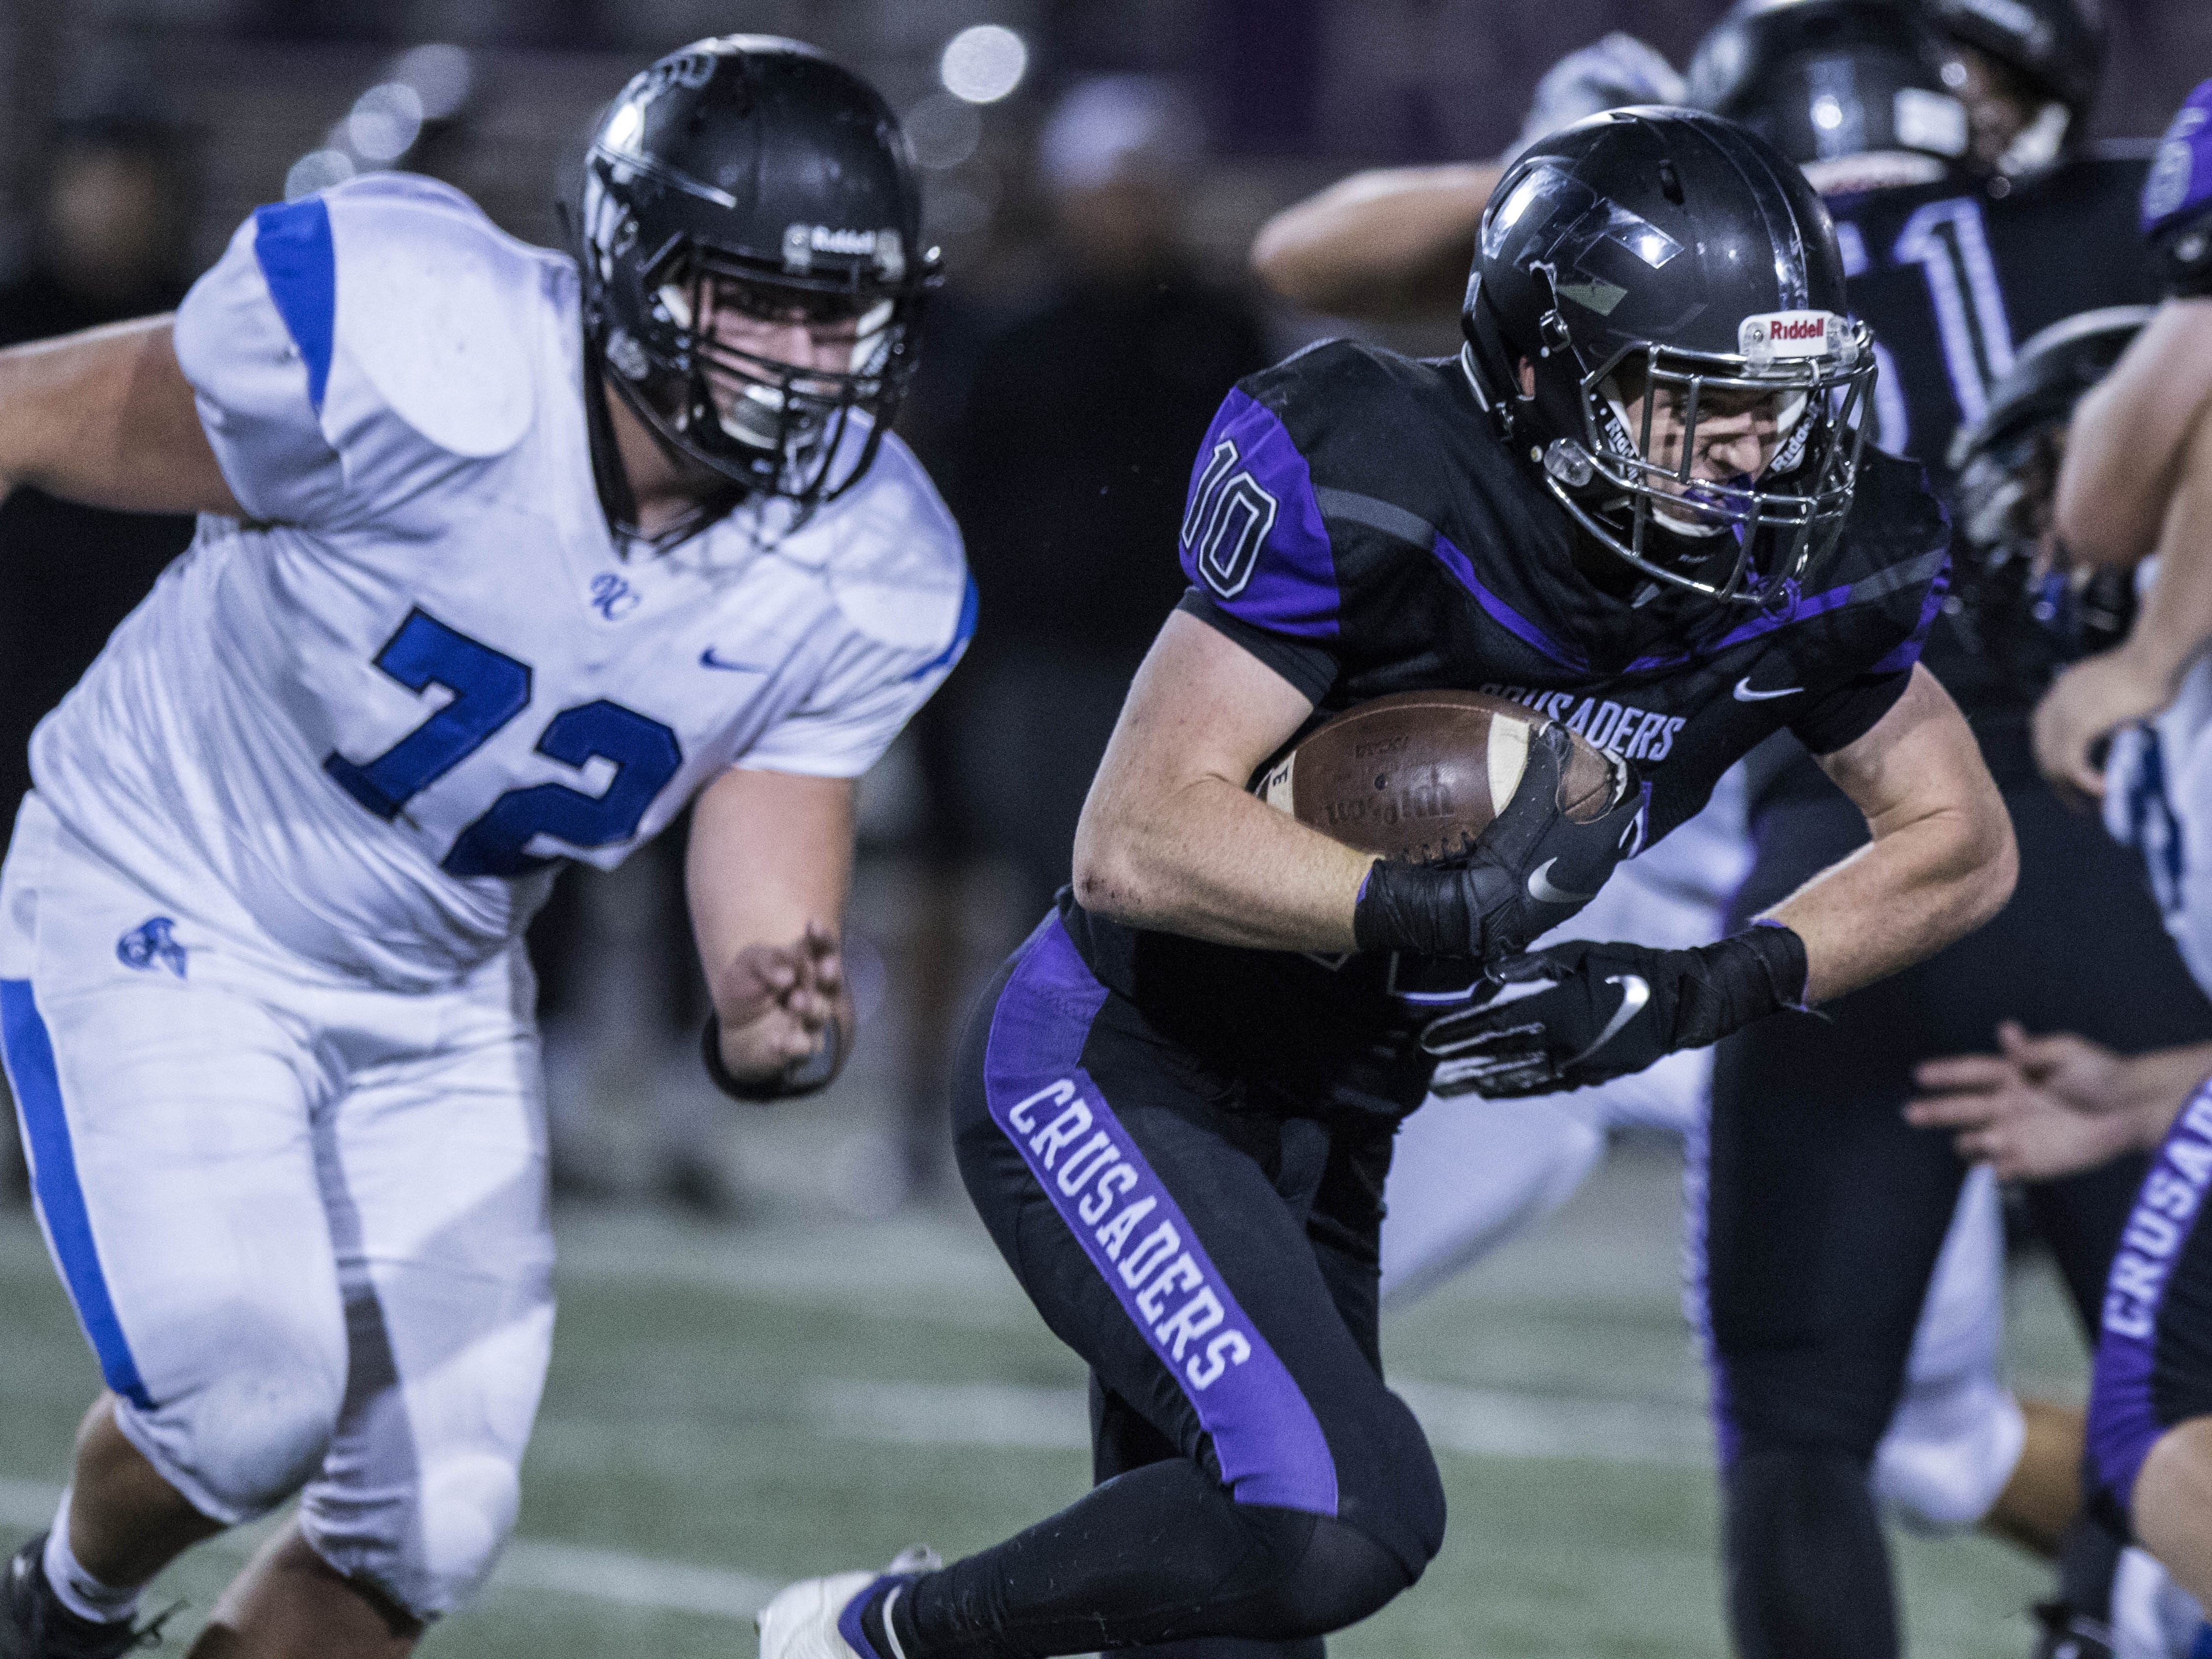 Northwest Christian's Aren Van Hofwegen (10) finds running room against Valley Christian's defense during their game at North Canyon High School in Phoenix  Friday, Nov.17, 2018. #azhsfb